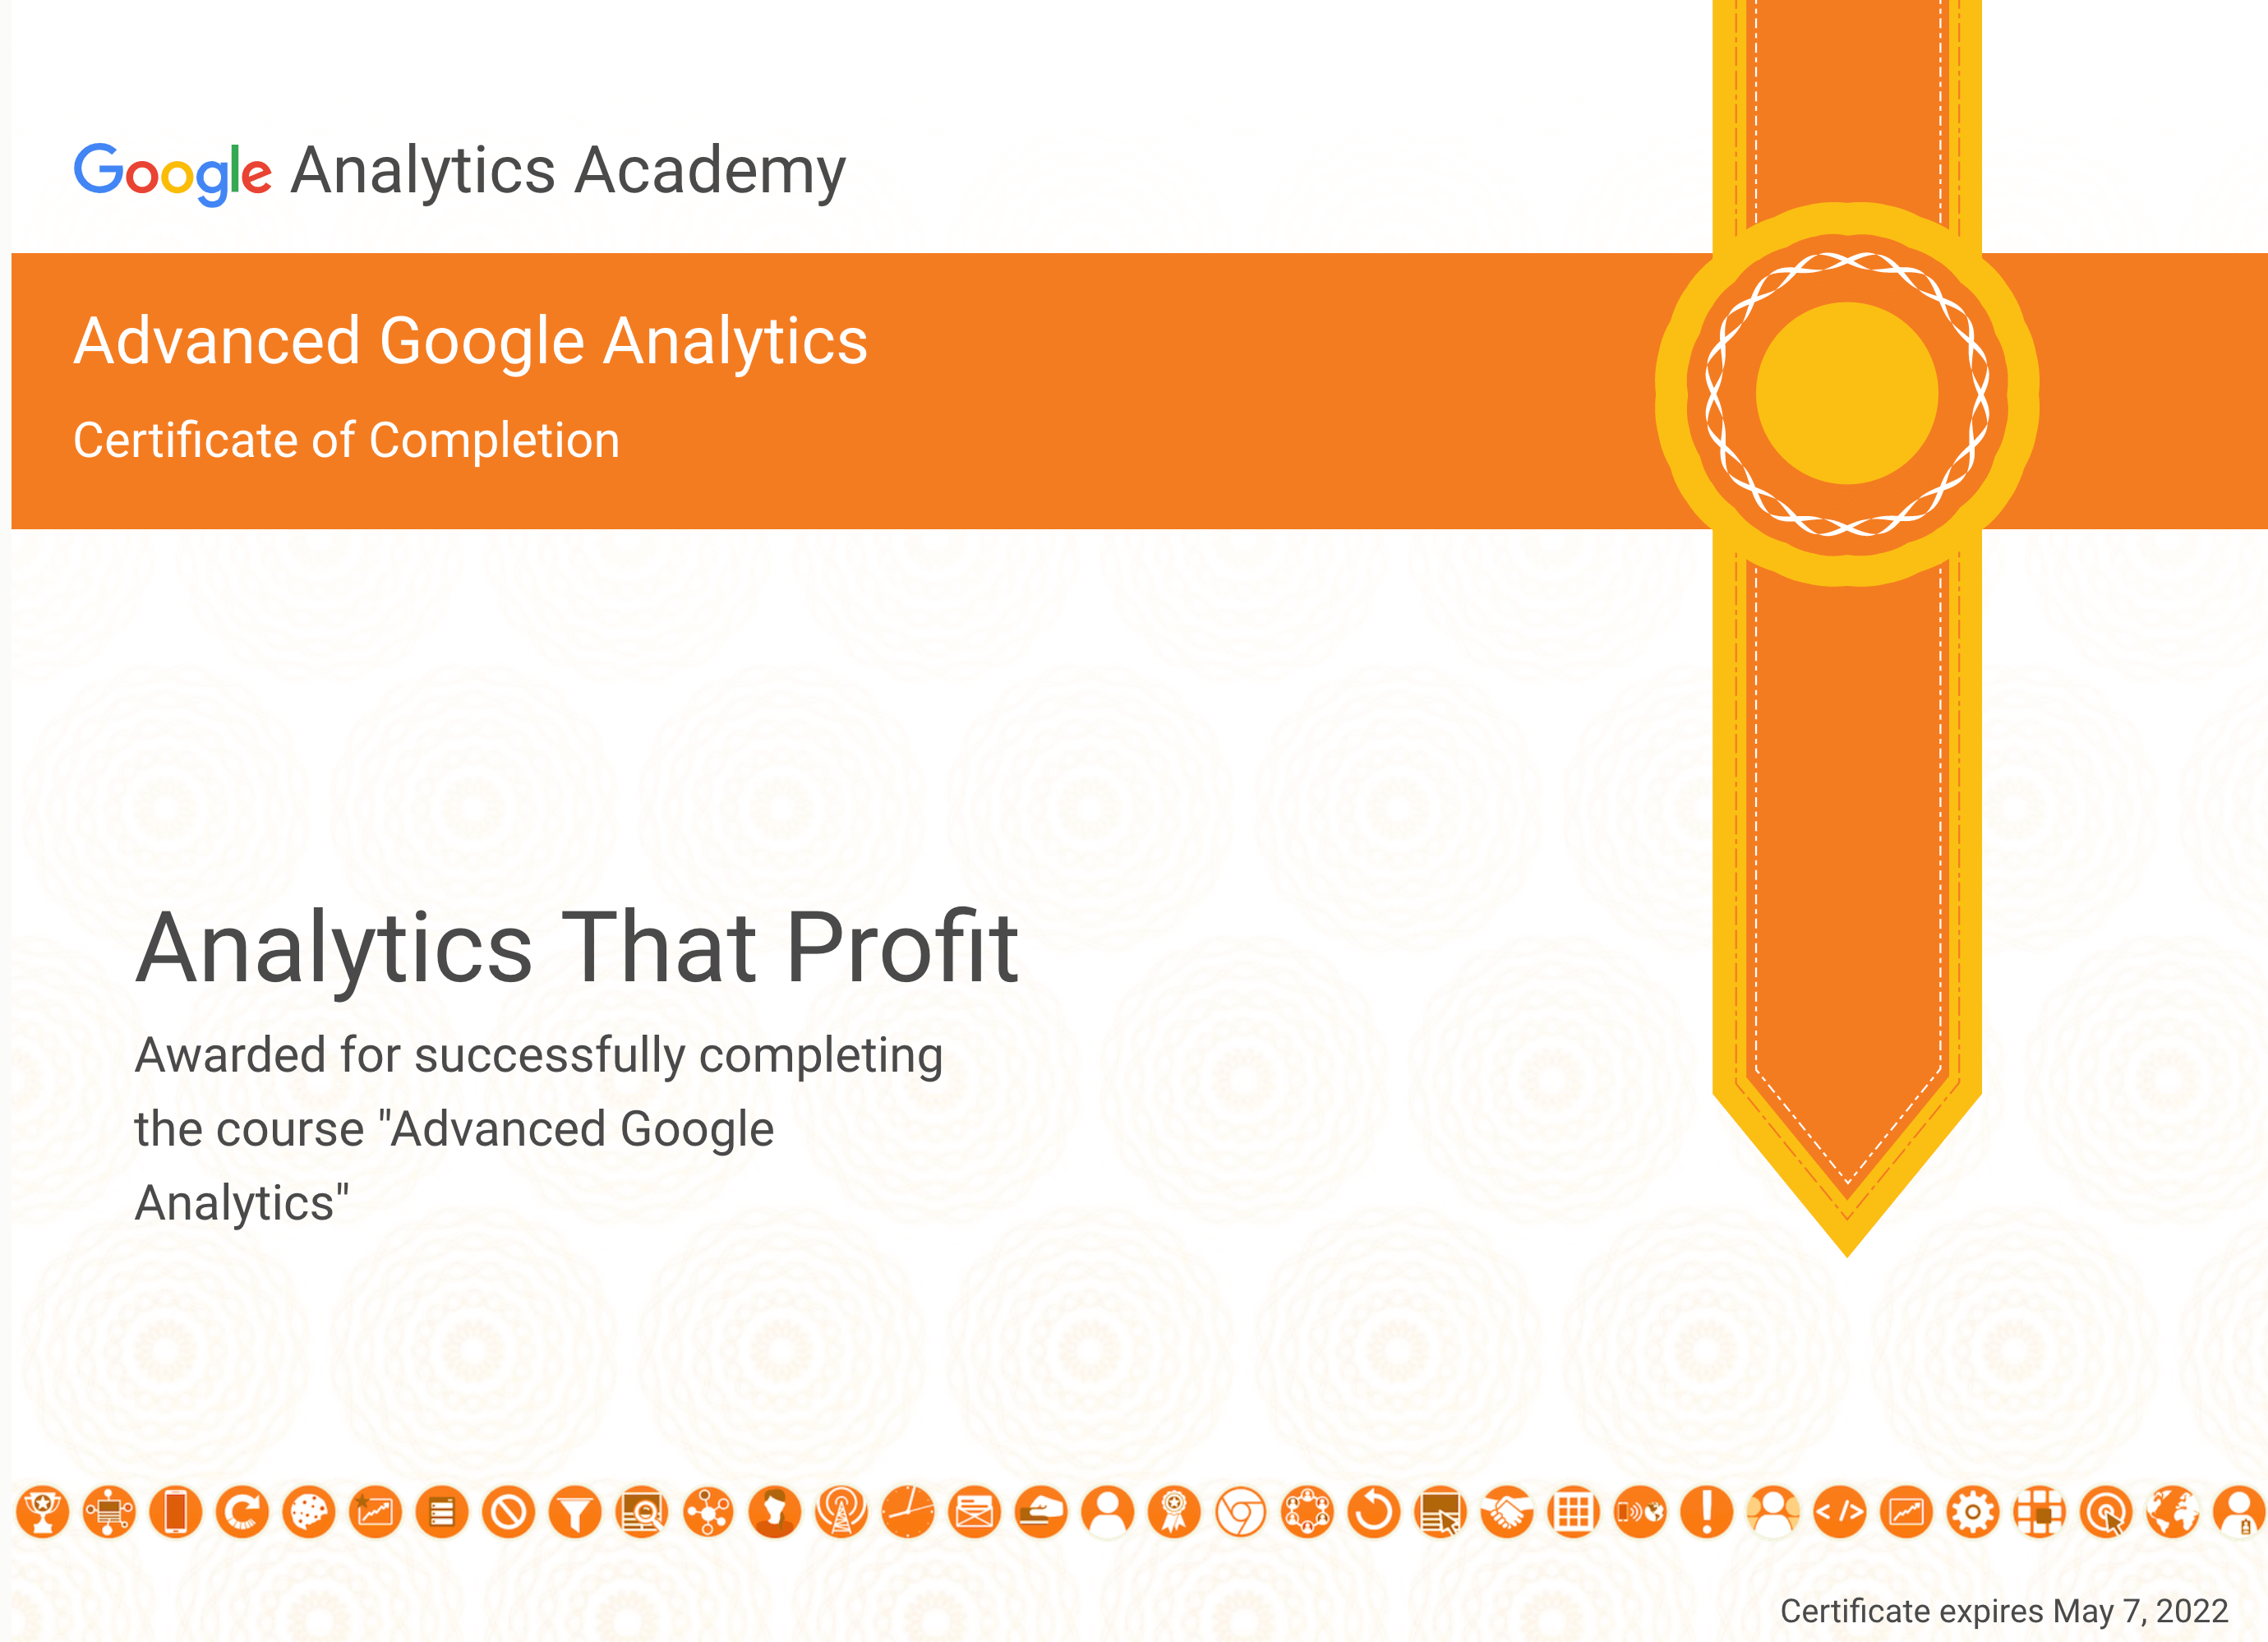 Advanced Google Analytics 2022